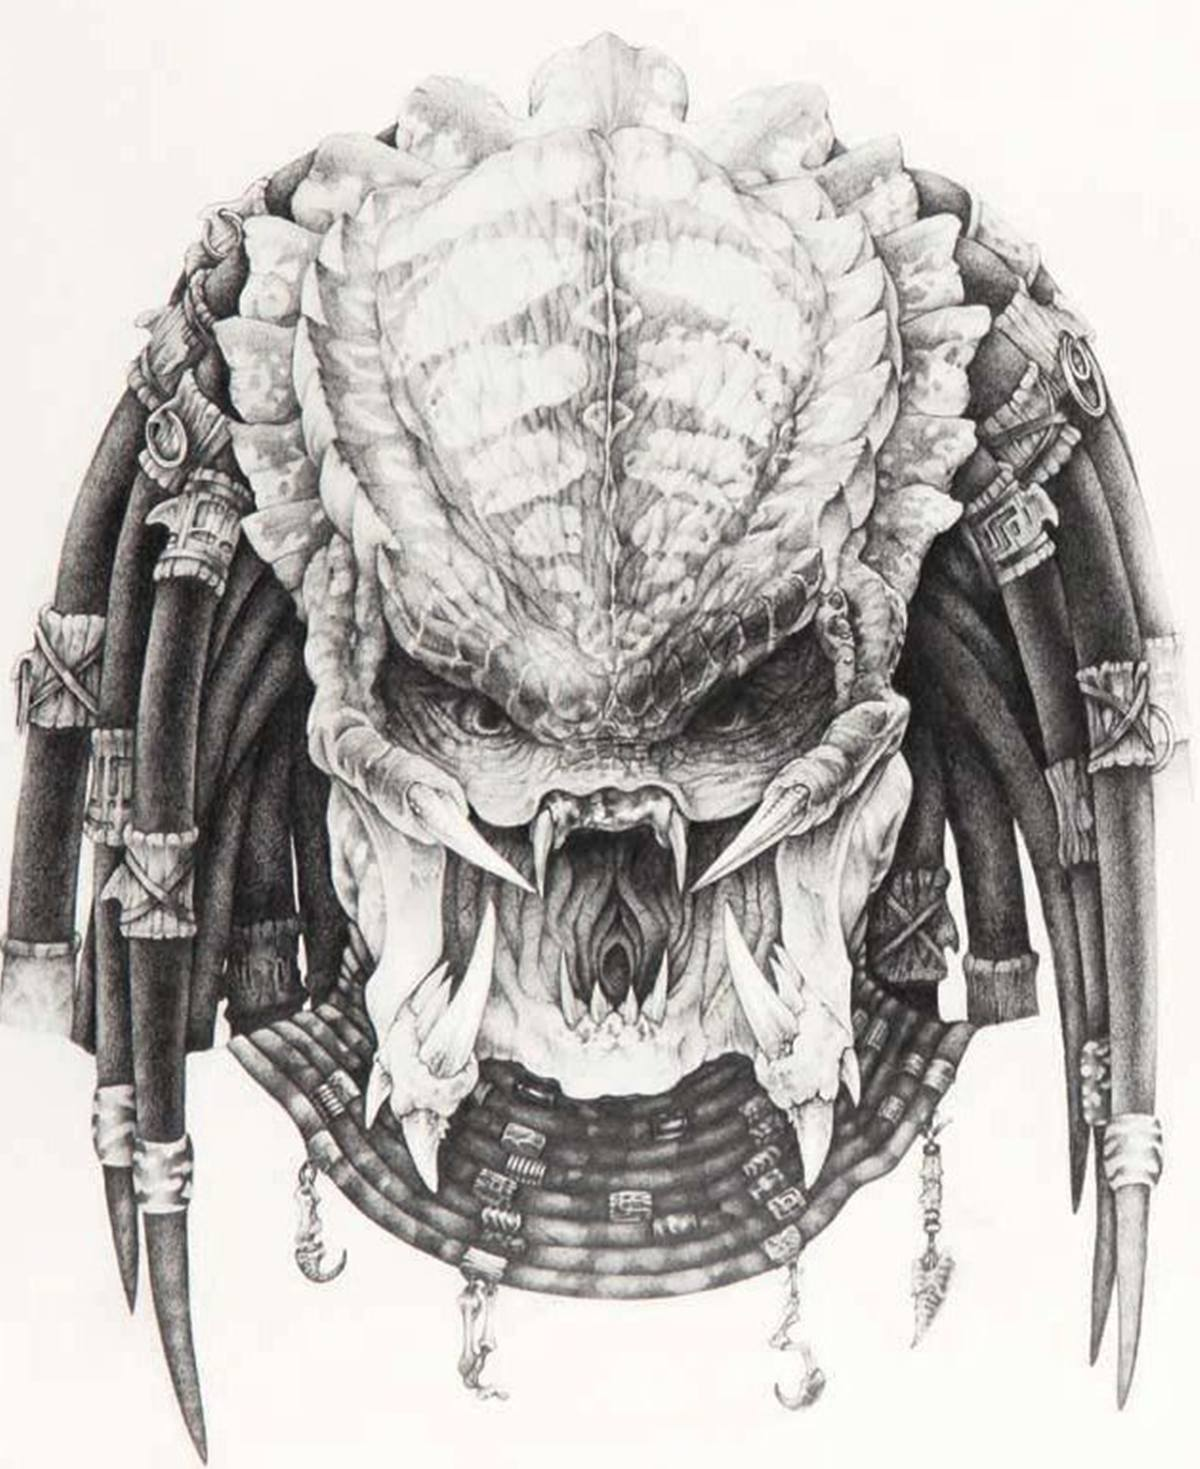 4 12 12 Things You Might Not Have Realised About Predator